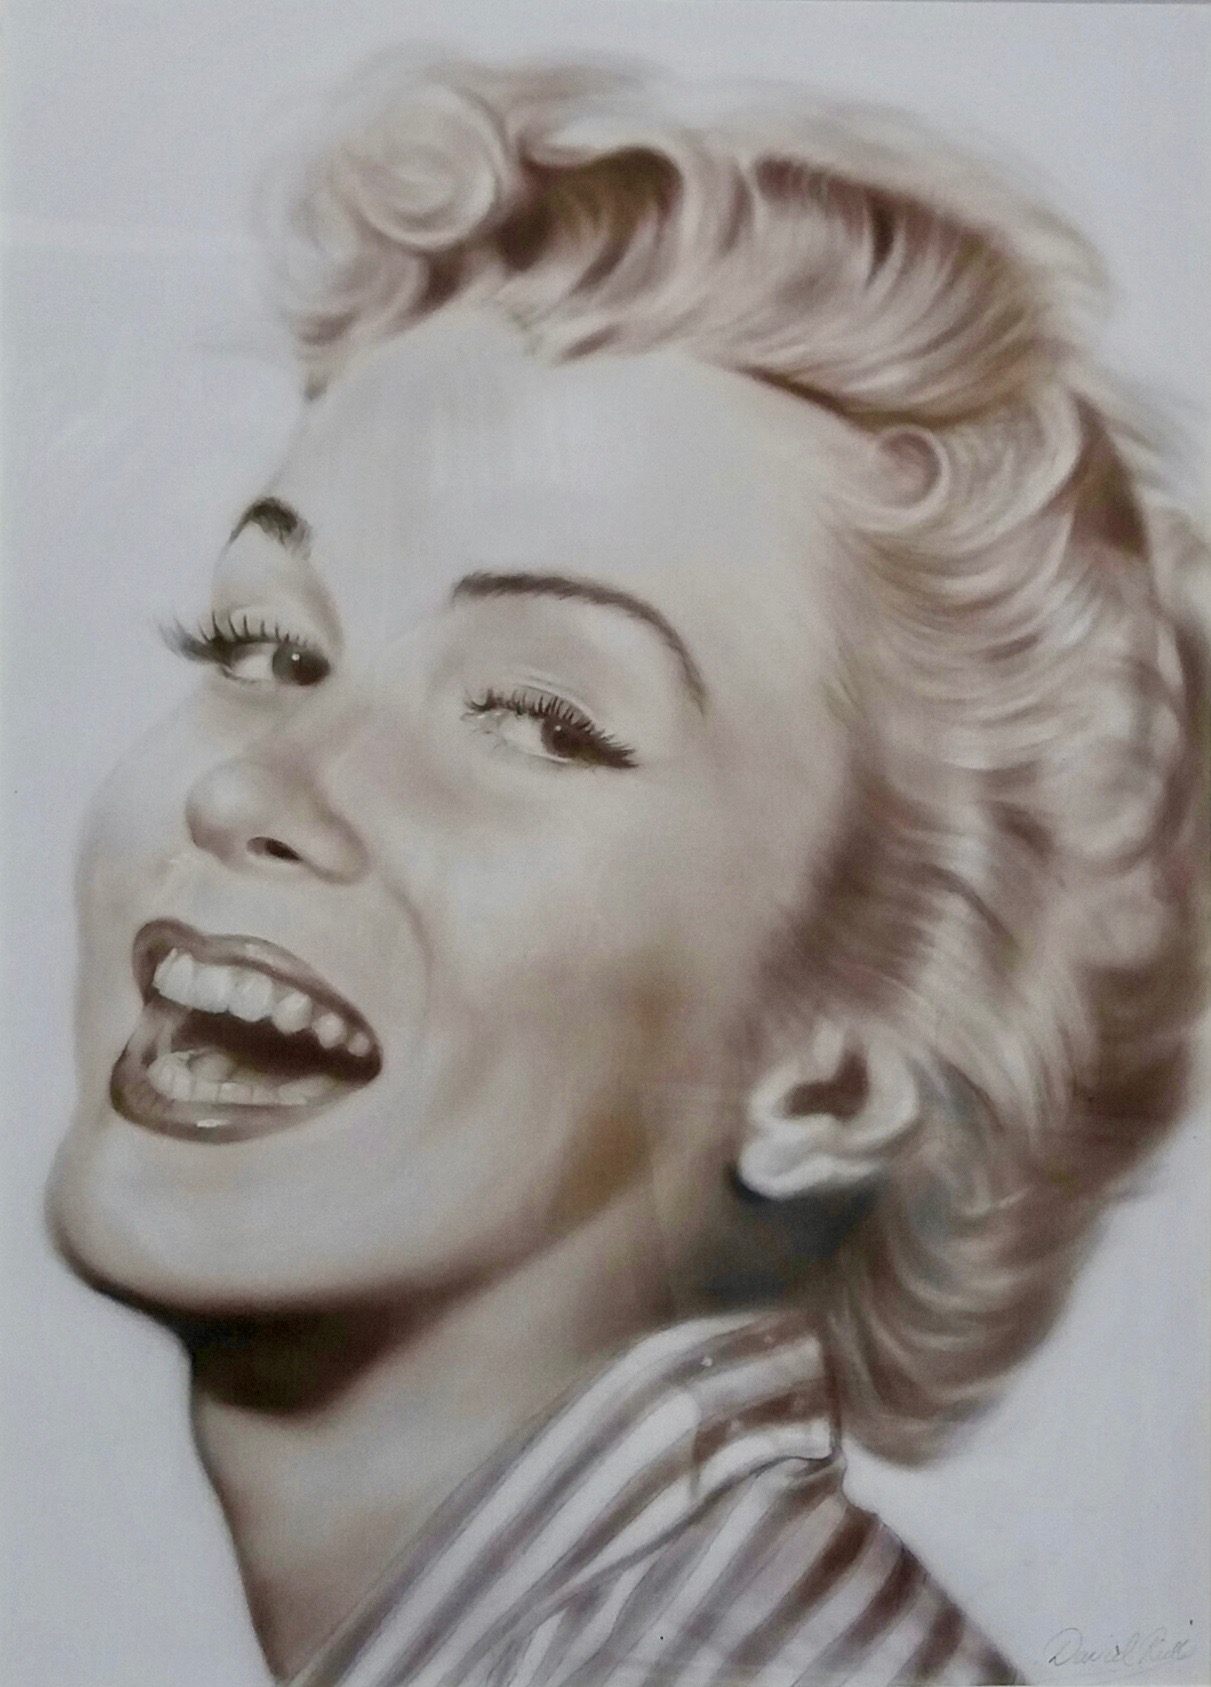 David Ridler 'Joyful Marilyn'